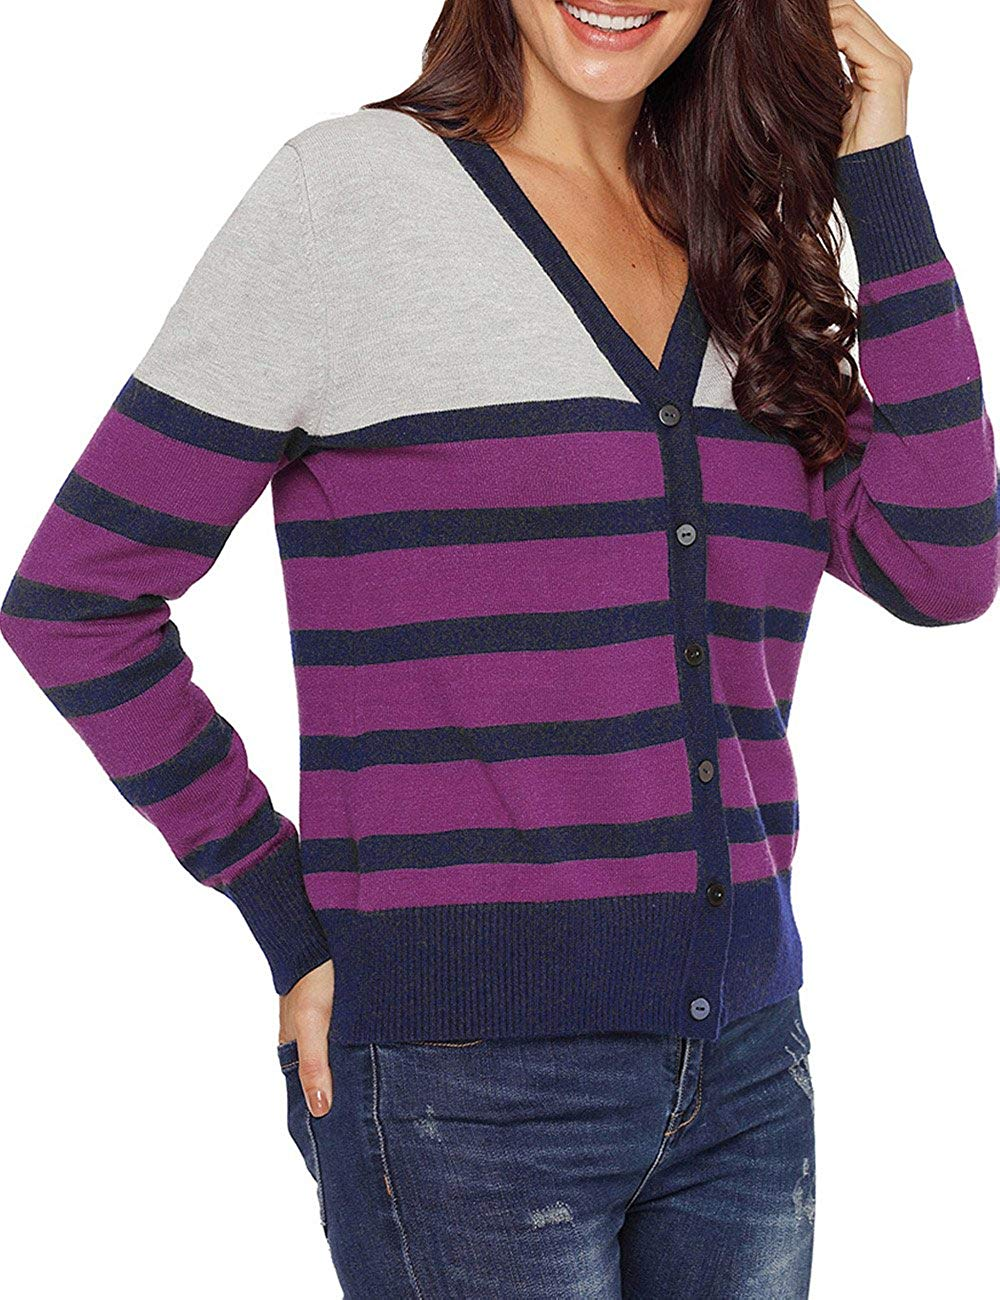 CILKOO Womens Color Block Stripe Print Button Front Knitwears Long Sleeve Casual Cardigan Sweater